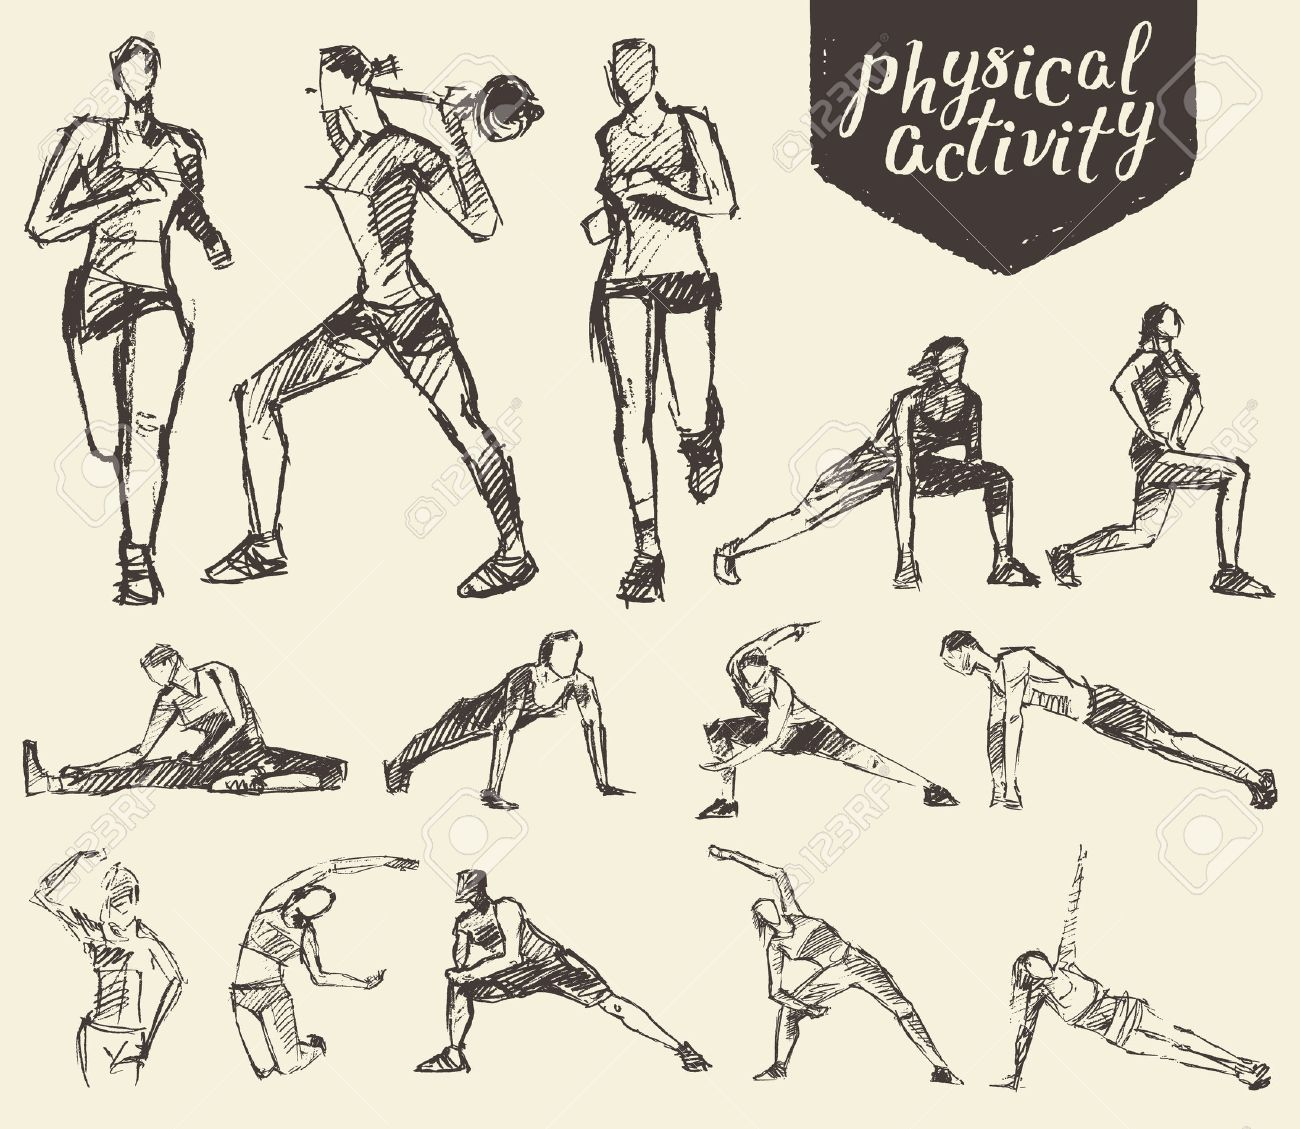 Fitness and gymnastic exercises. Hand drawn vector illustration, sketch - 52881101